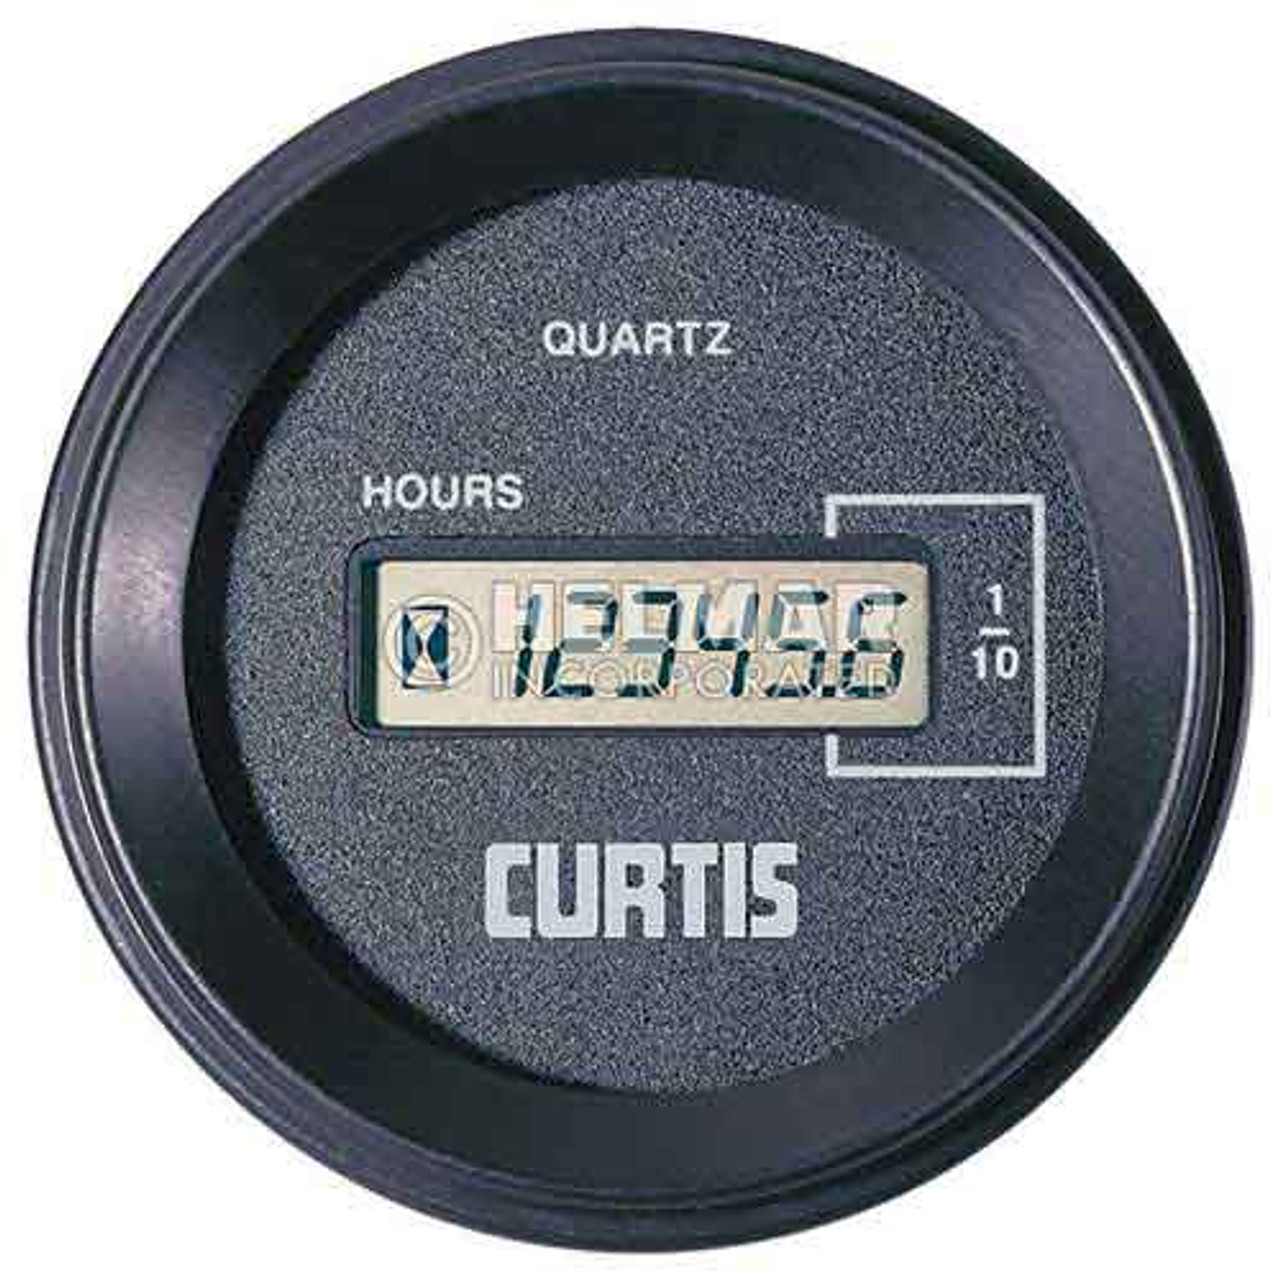 700QN00101248D Curtis 700 Series Solid State Hour Meter and Counter Q Case, 12-48 Volts